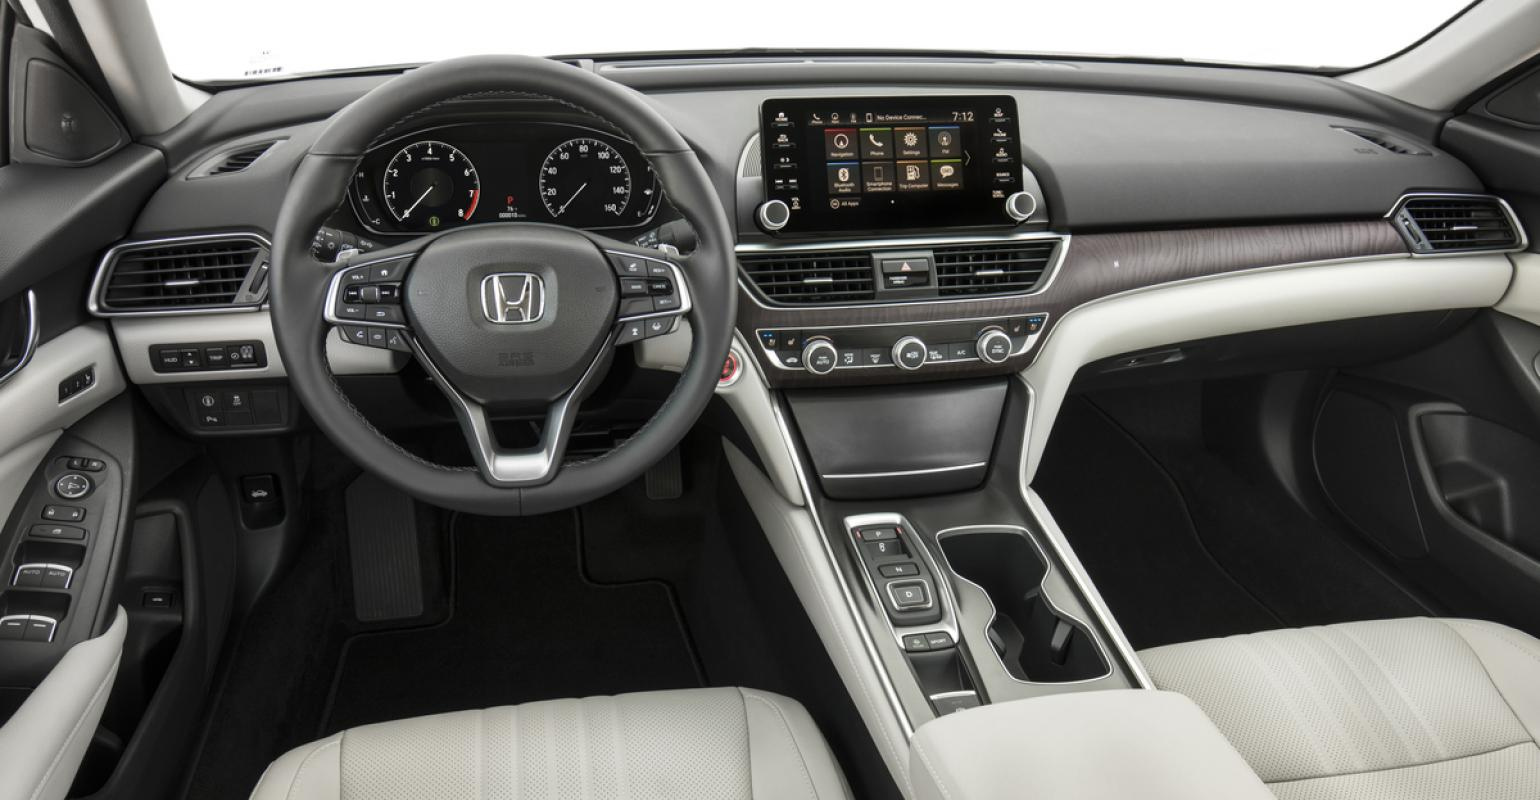 Rsquo18 Honda Accord Interior Features Thinner Ip To Create More E